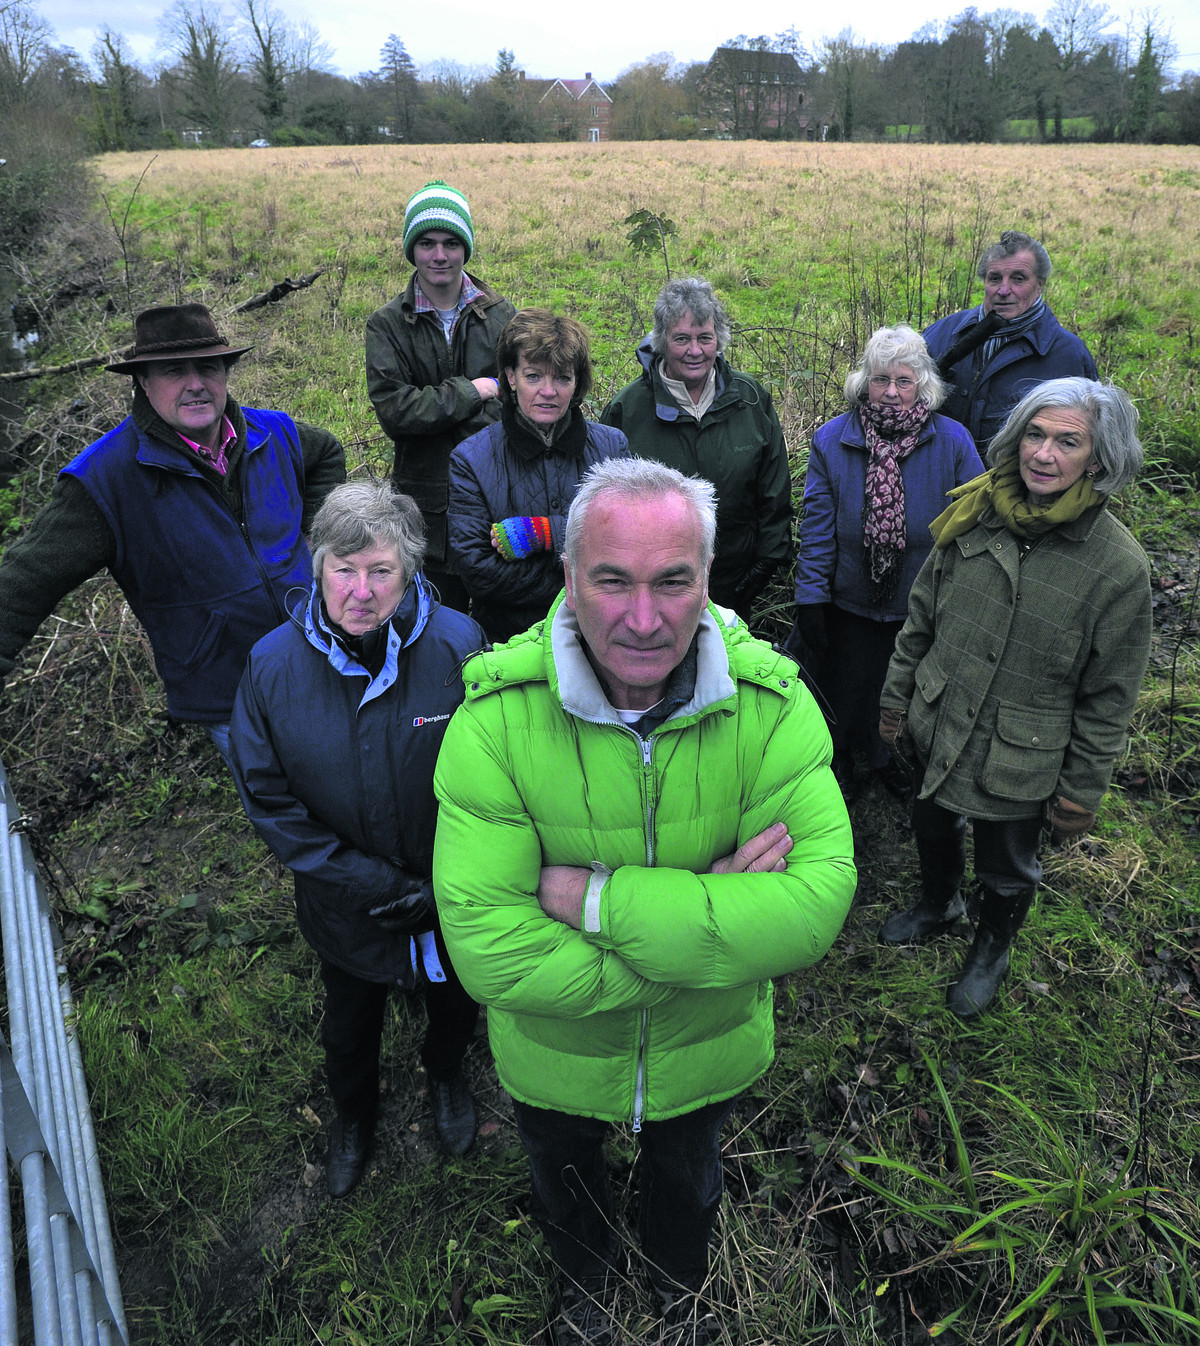 Mike Perry, front, with Bishopstrow villagers who are angry over support given for plans to build 35 homes on the Spurt Mead watermeadows off Boreham Road